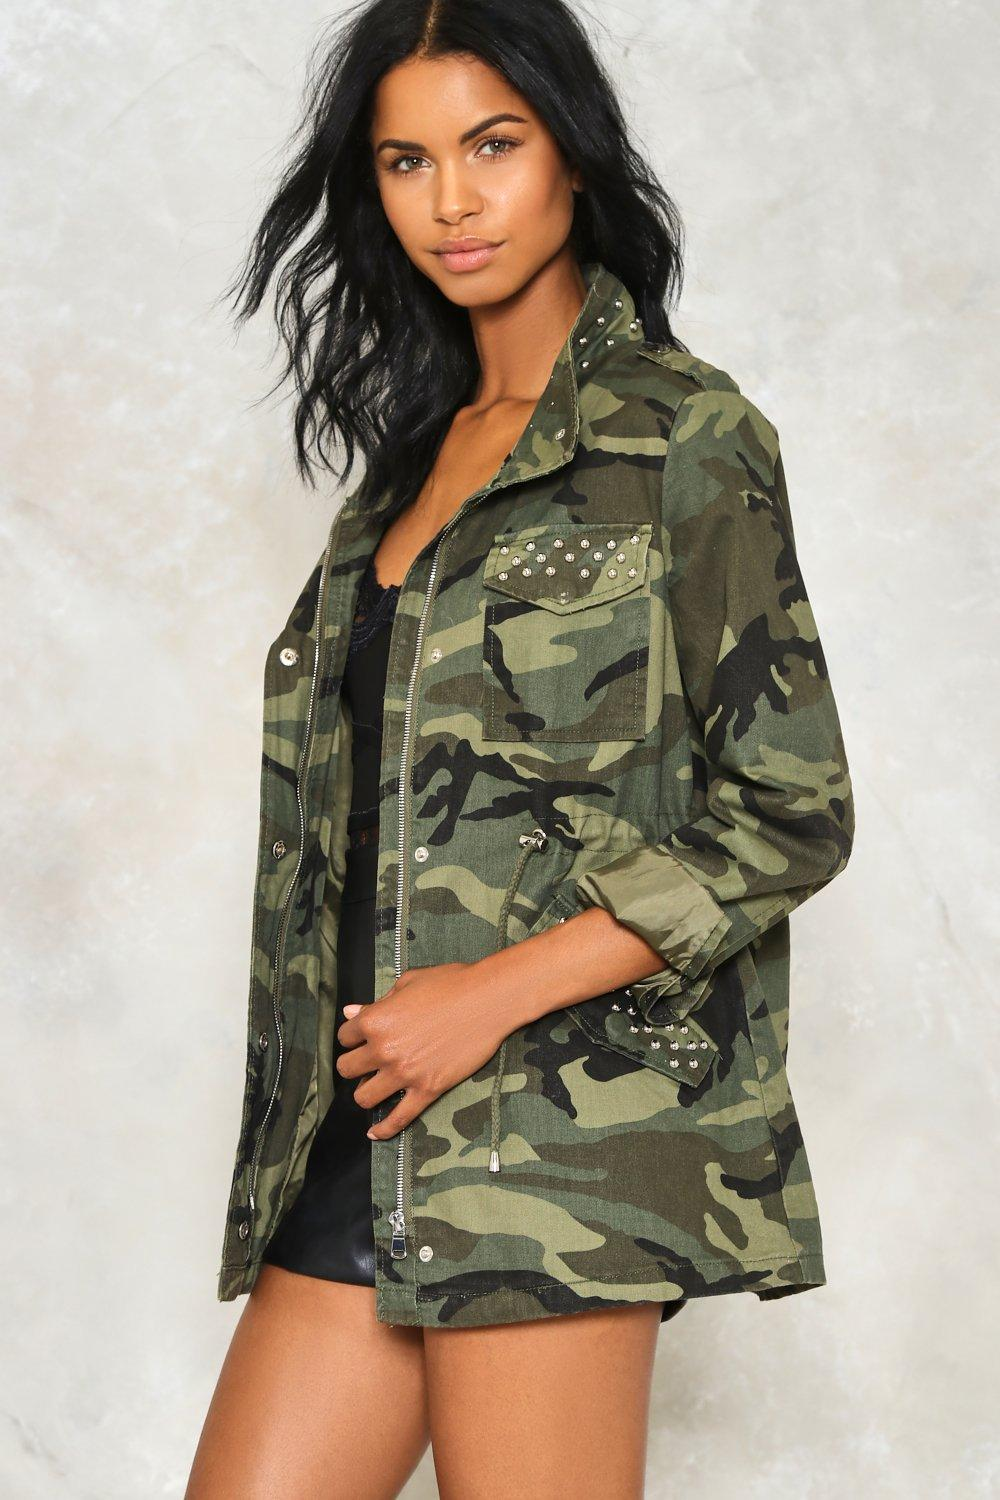 d9f9fce099d At Ease Studded Camo Jacket. Hover to zoom